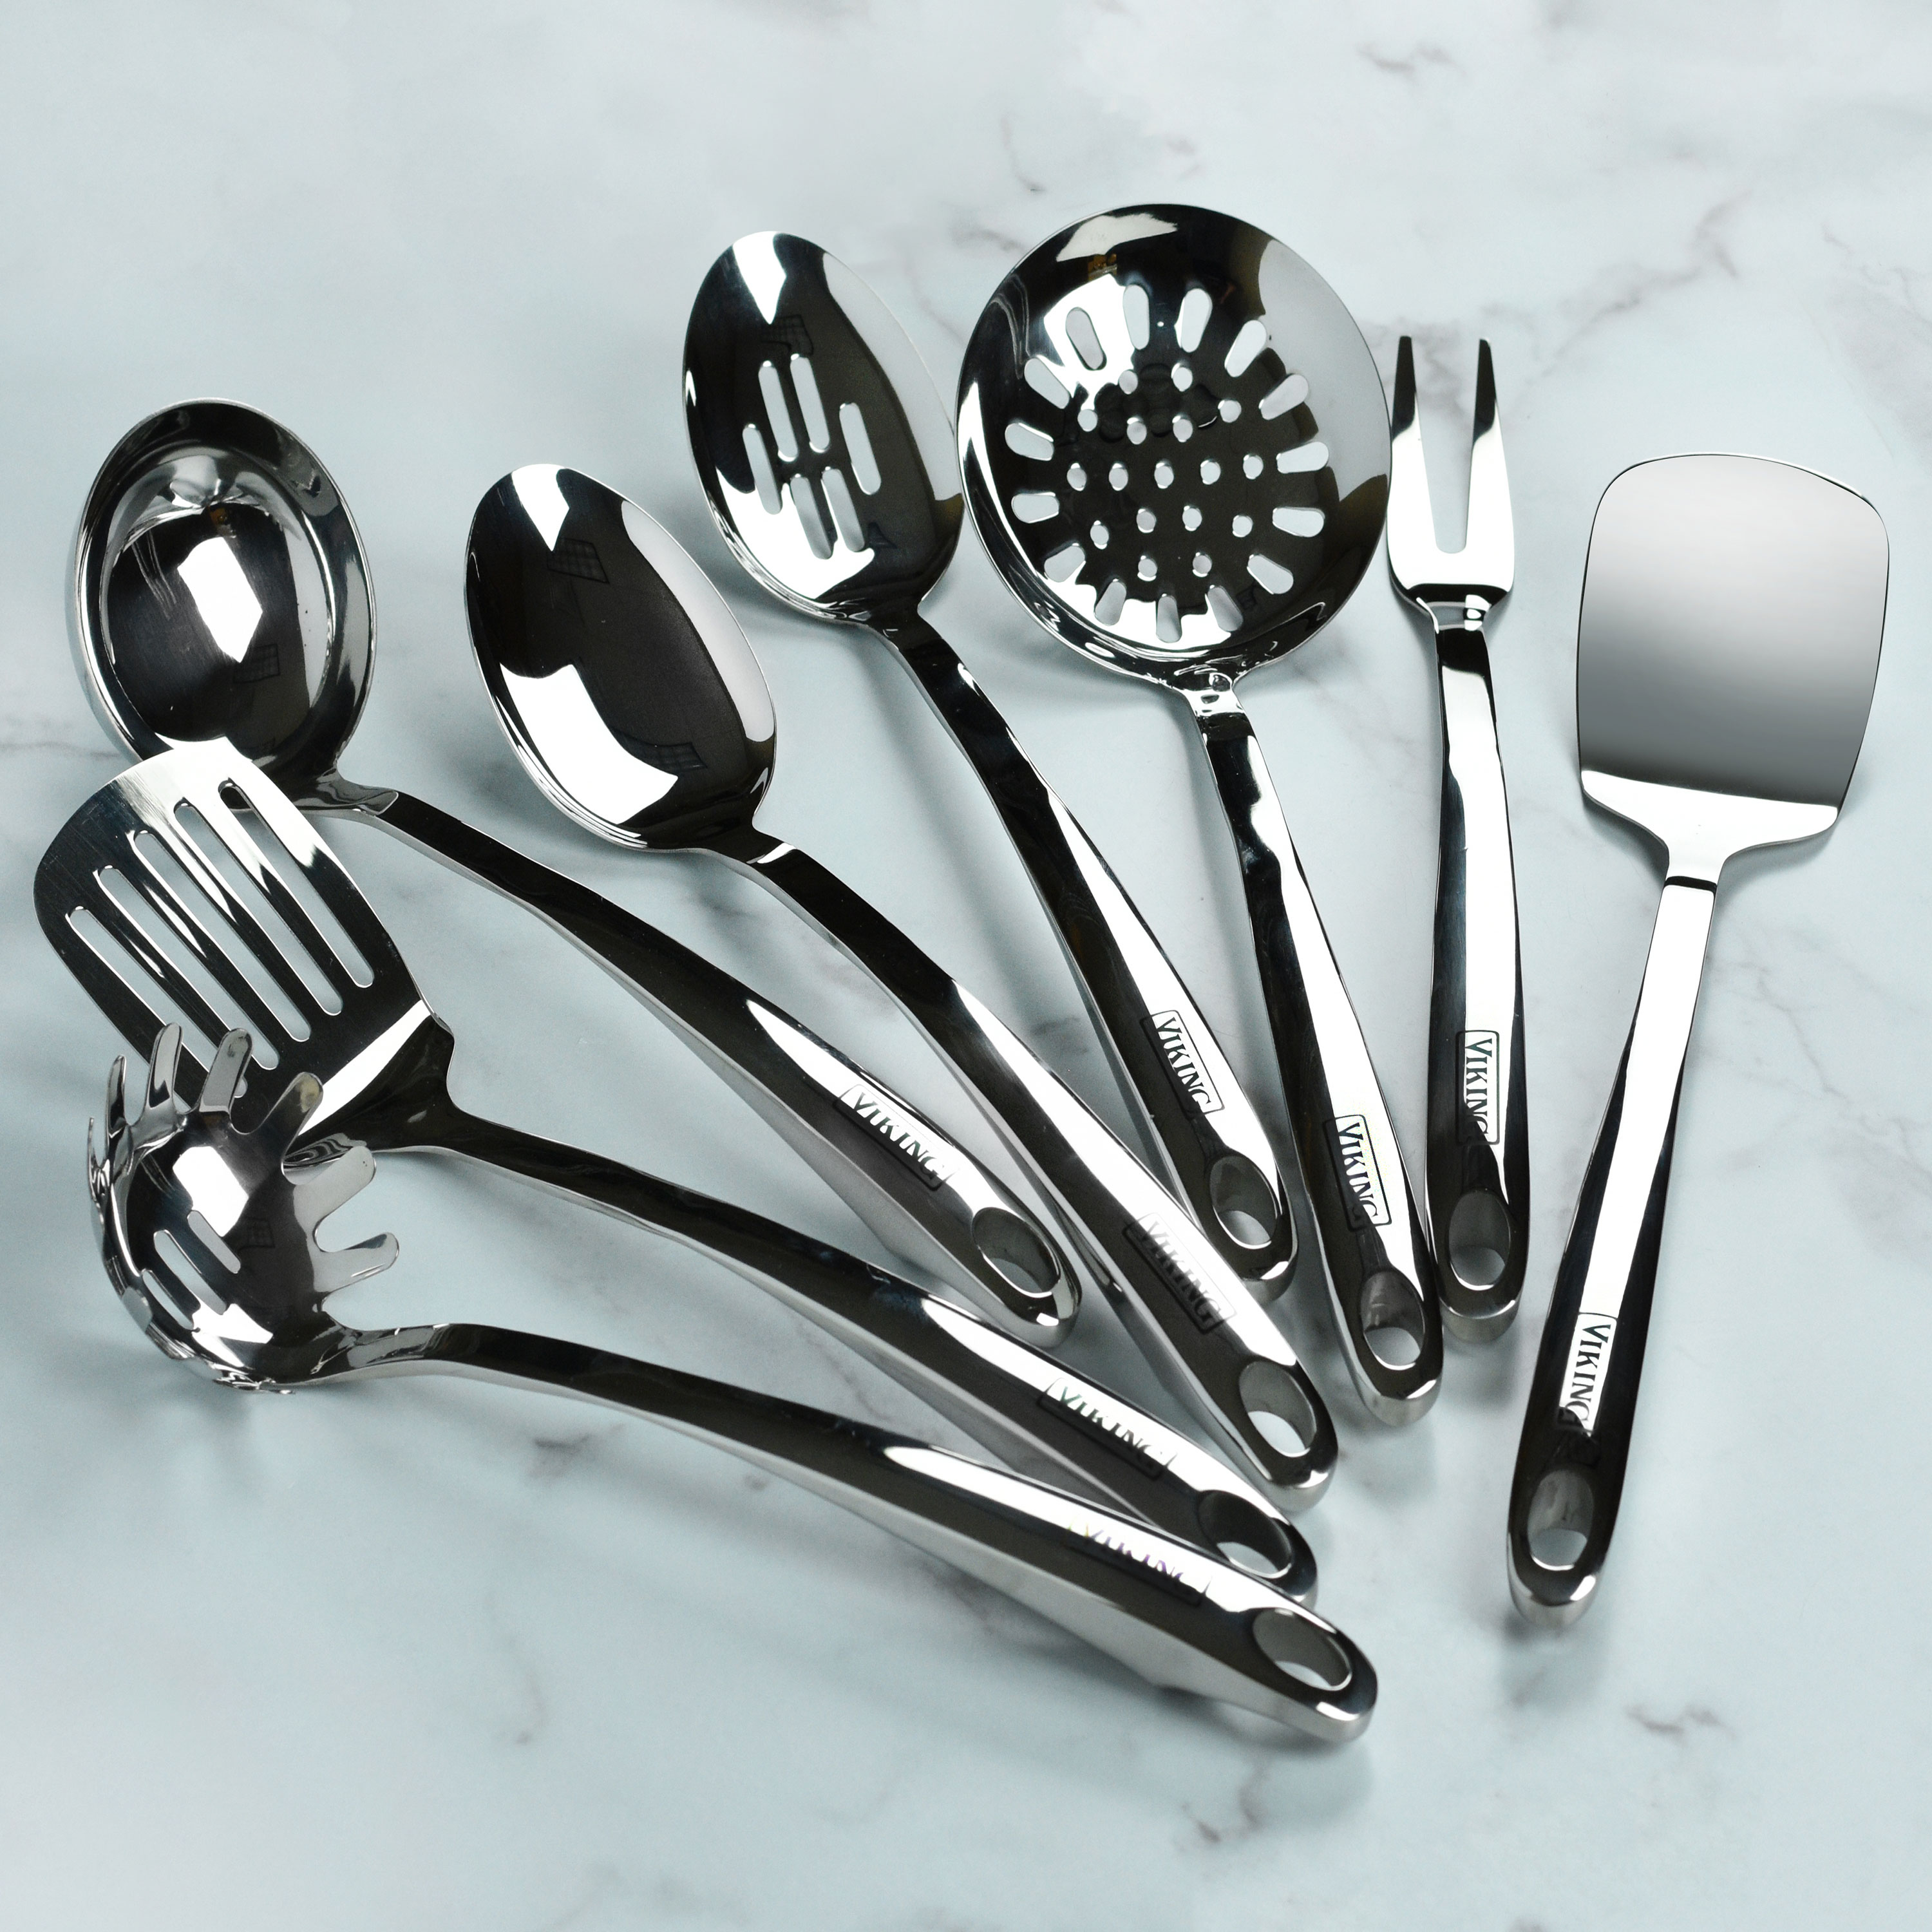 6 Tools Viking Stainless Steel Kitchen Utensil Set with Stay Cool Handles